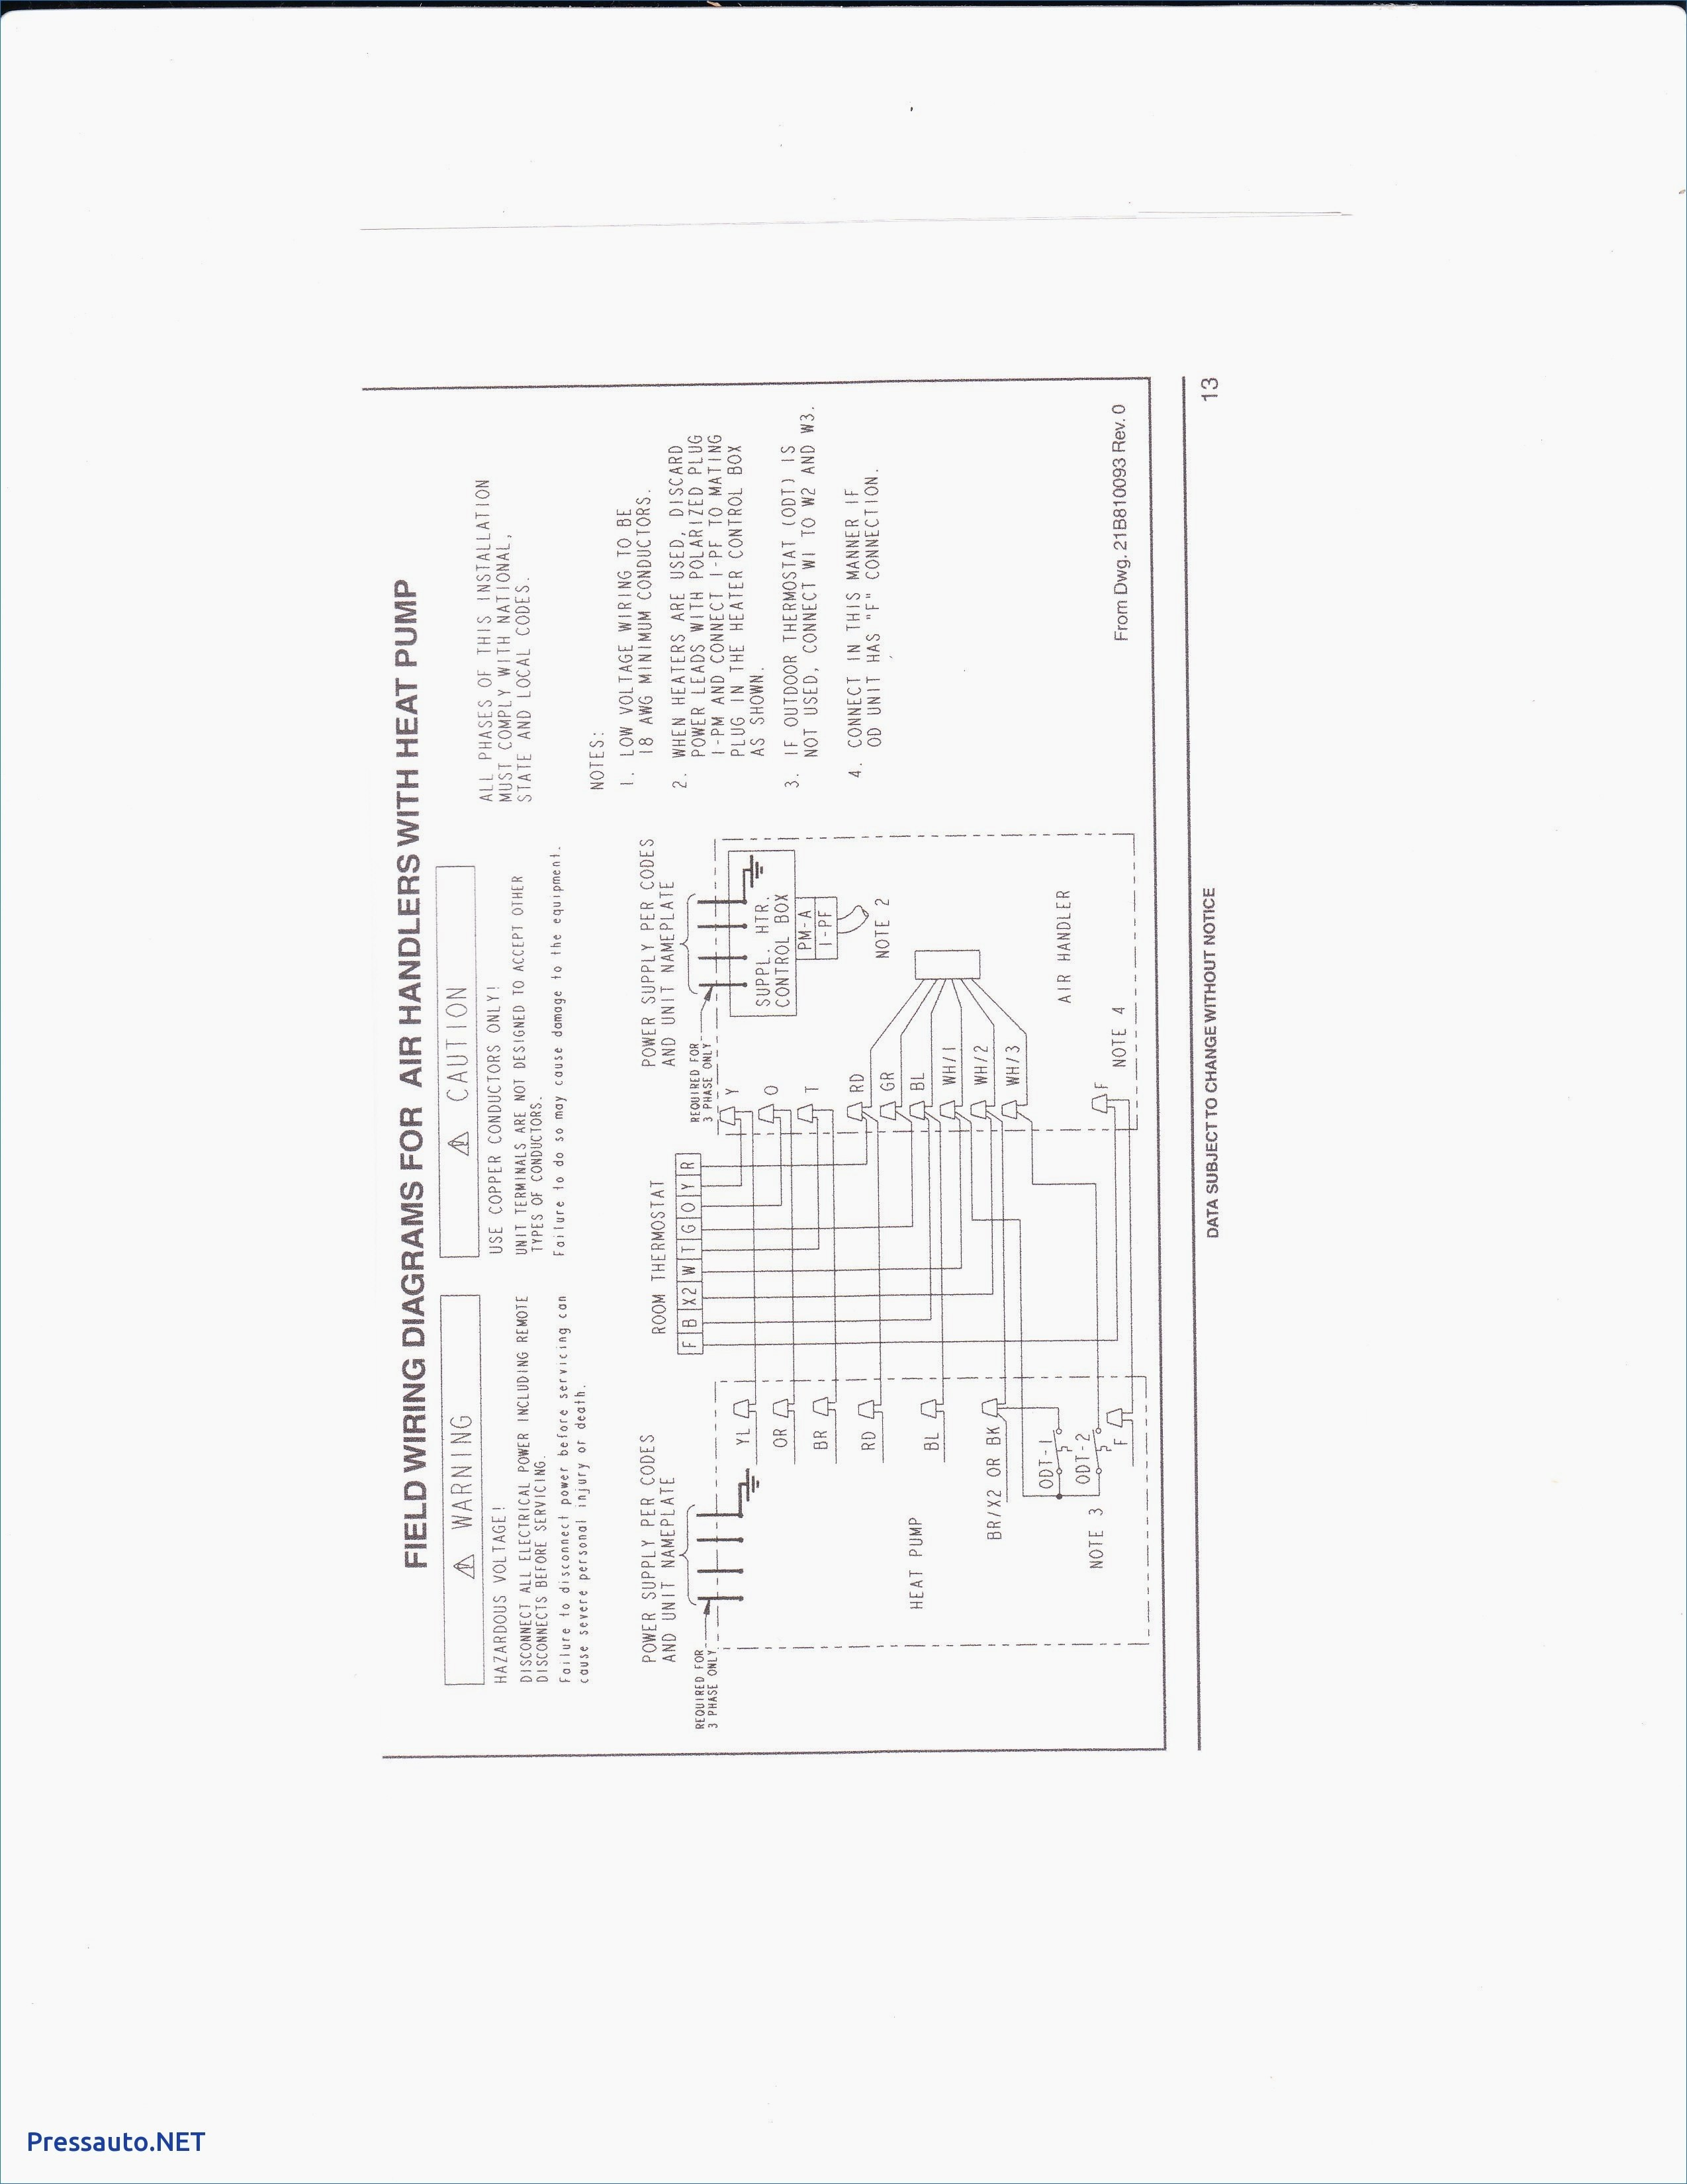 Photos Of Home Air Conditioner Wiring Diagram